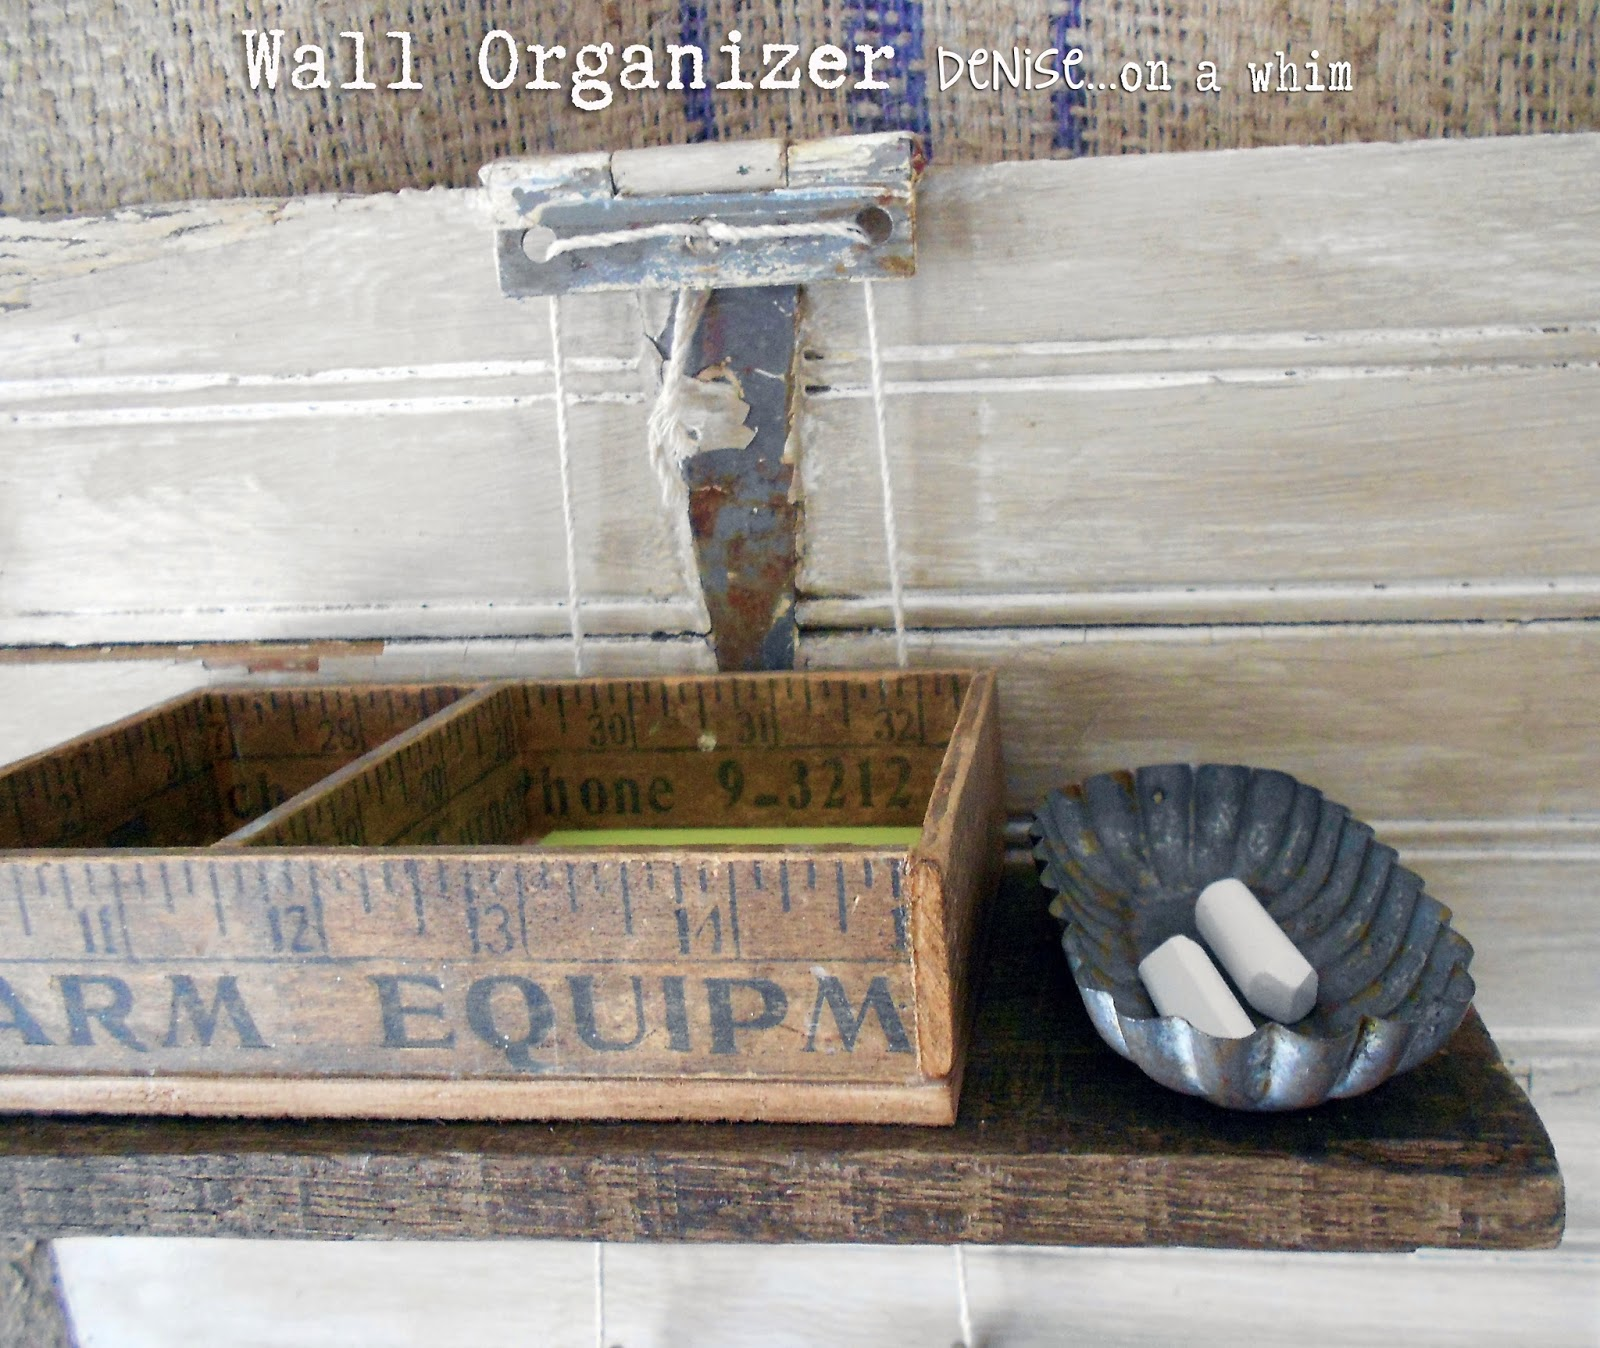 Small Vintage Tin for Holding Chalk on a Wall Organizer via http;//deniseonawhim.blogspot.com